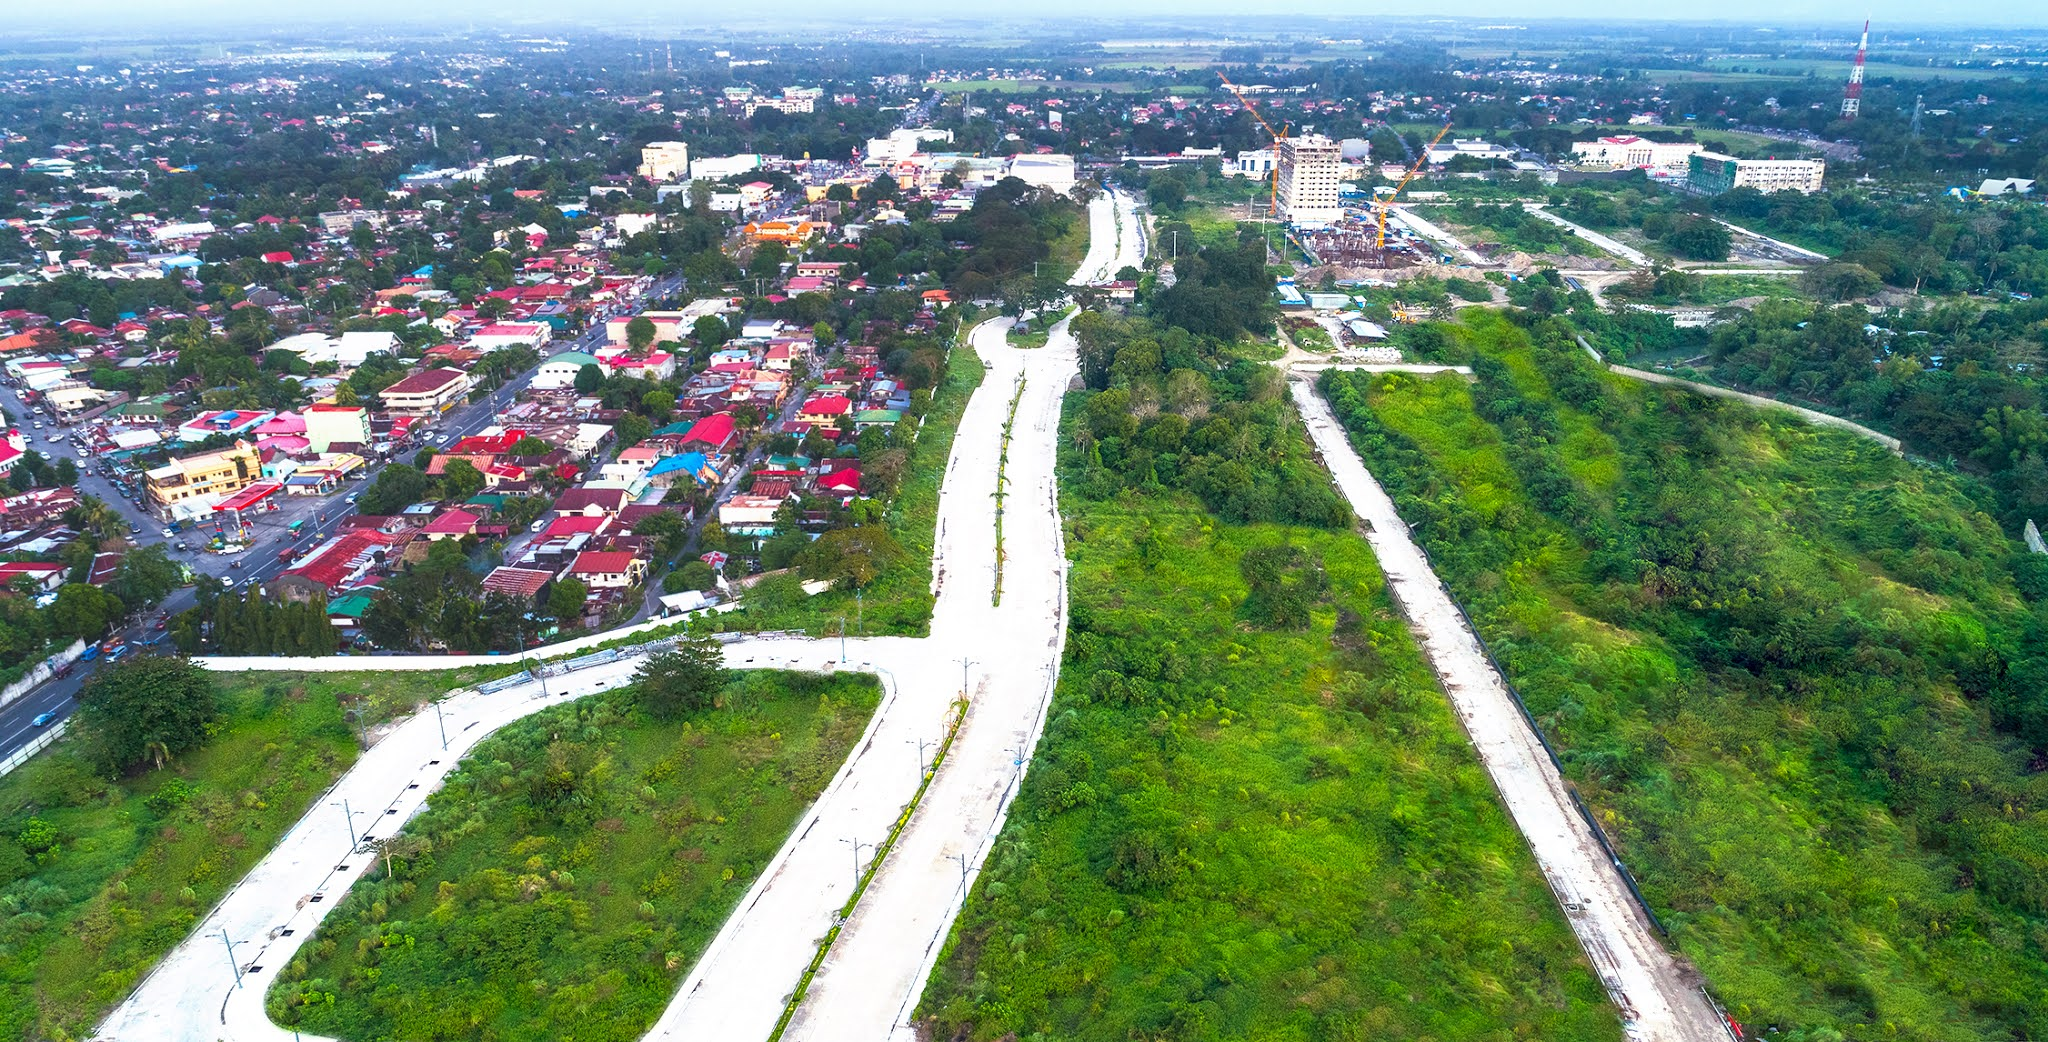 Ongoing developments inside the 34-hectare The Upper East township in Bacolod City where the company plans to build more office towers, malls, and residential towers in the next 5 years.